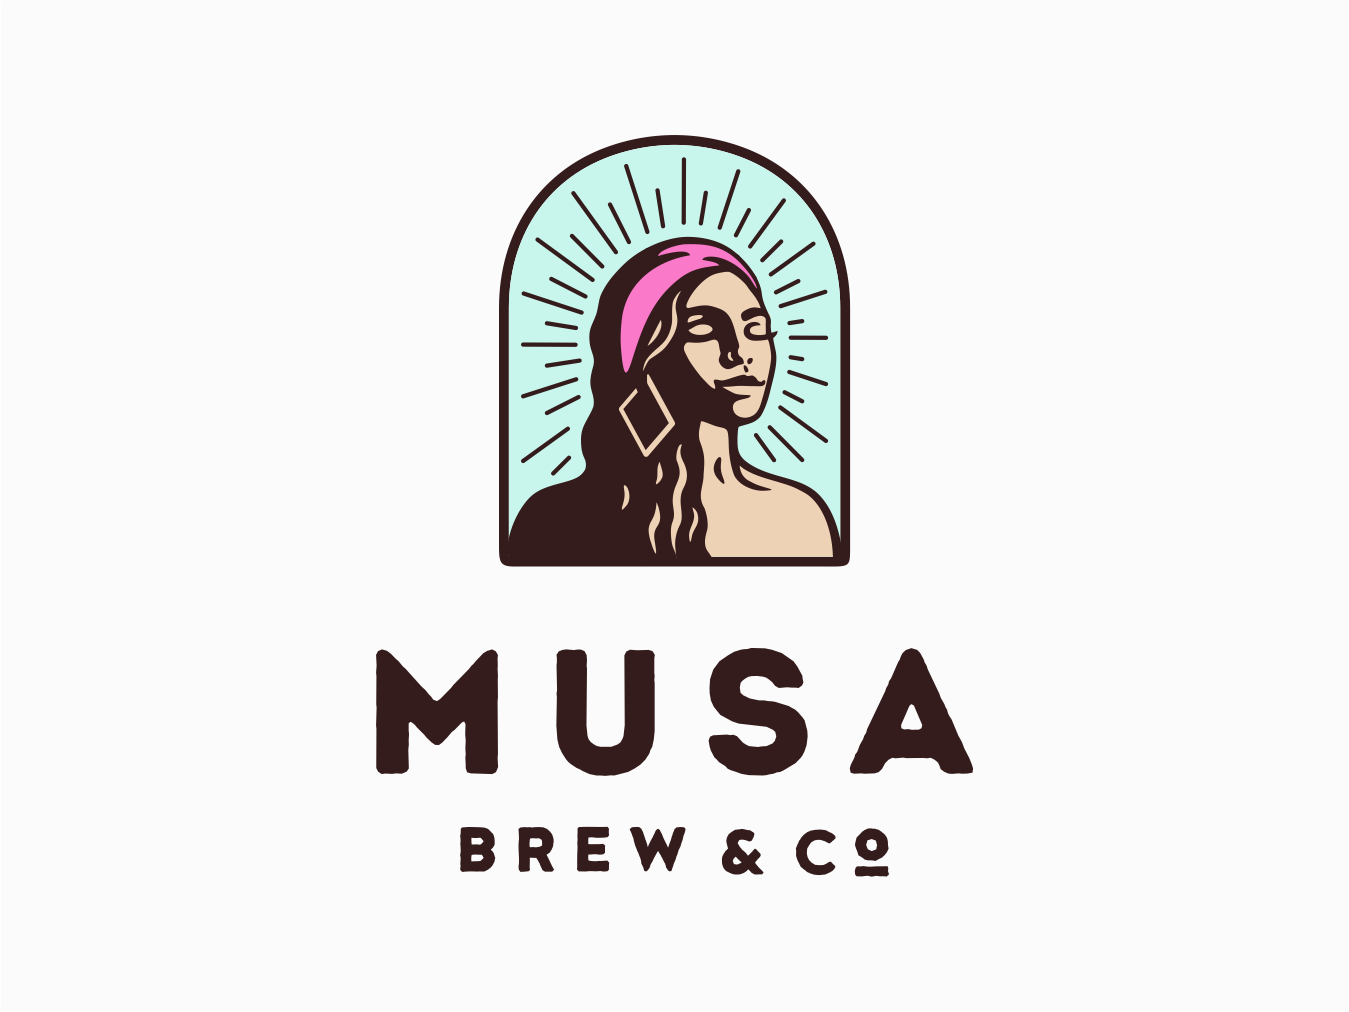 Musa Brew & Co. badge character vector cuba brewing brew coffee girl retro logo